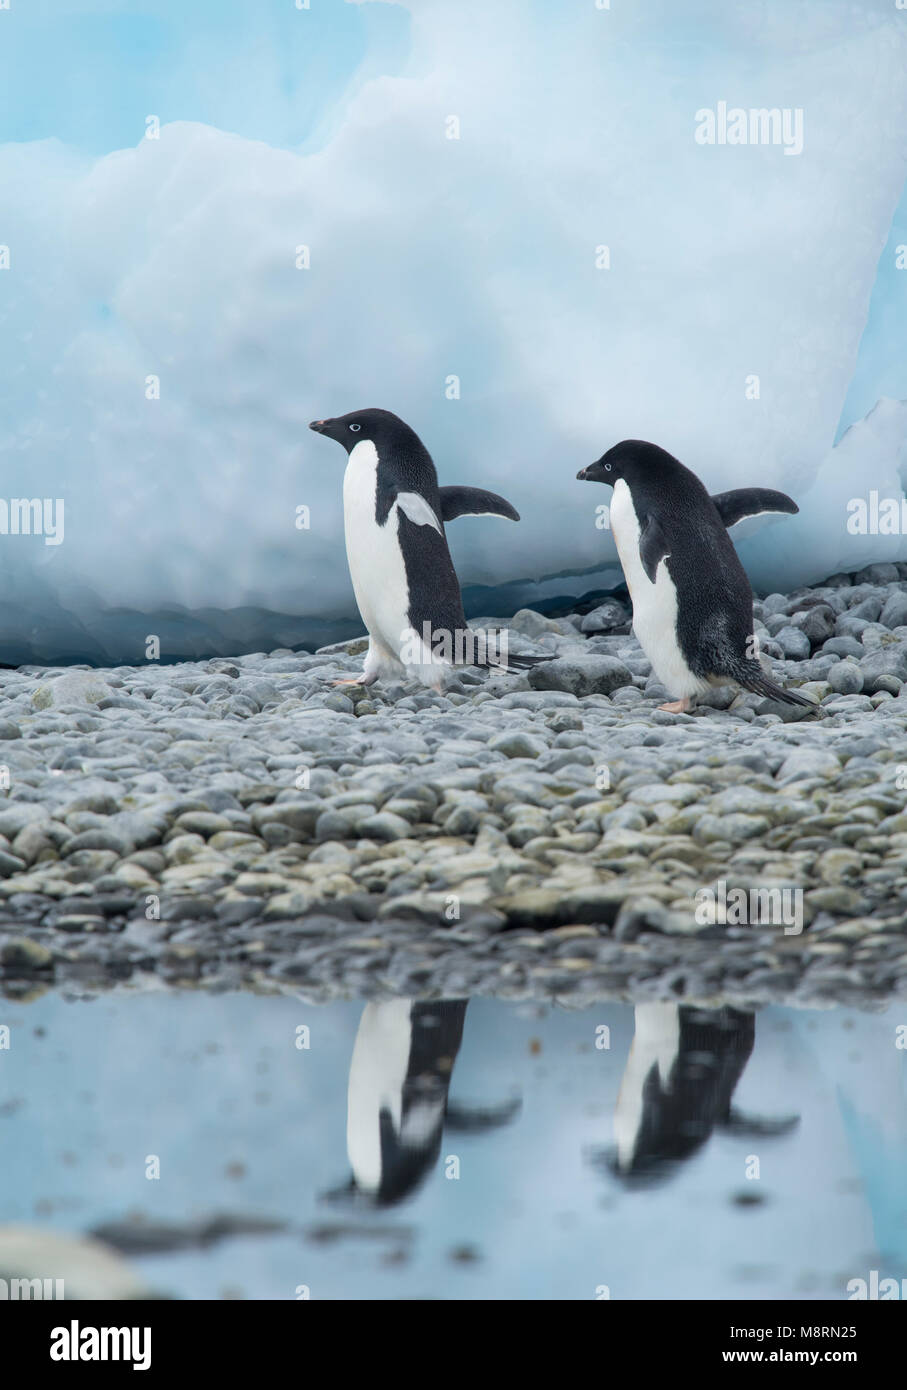 Two Adelie penguins walks along the shoreline casting a reflection in the water at Brown Bluff, Antarctica. - Stock Image